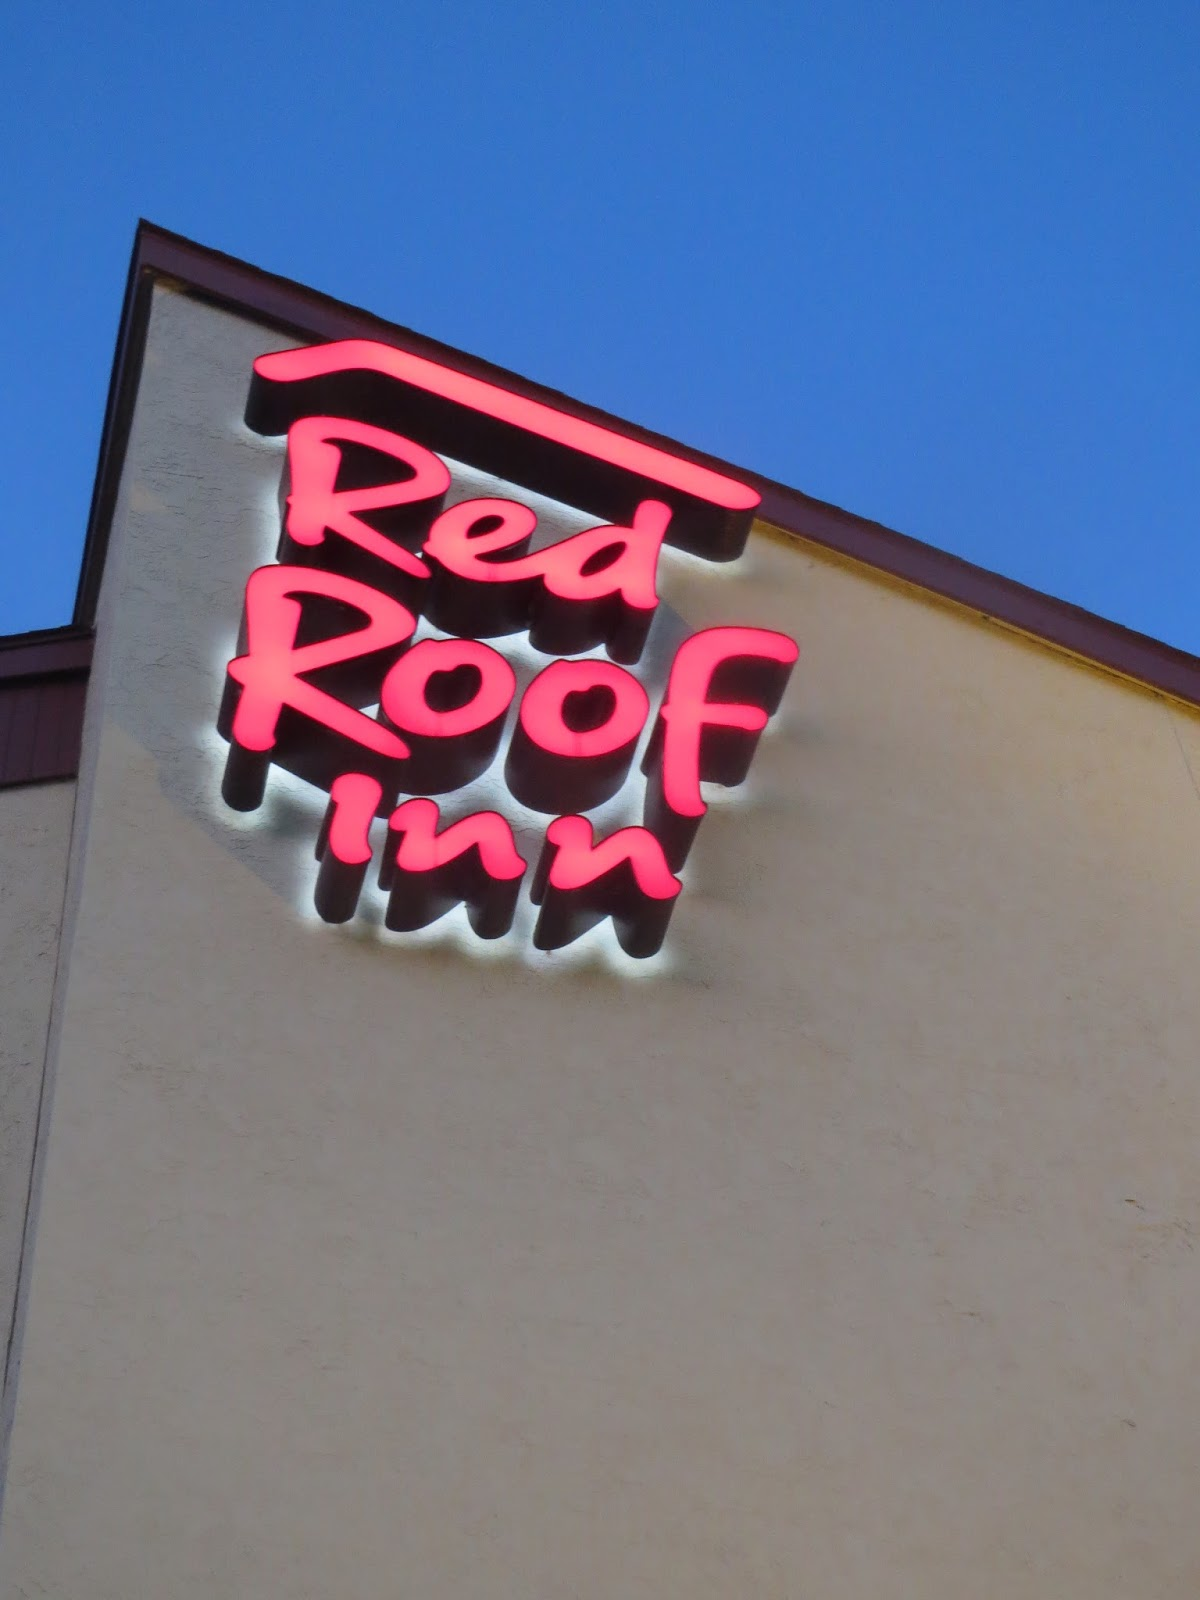 Red Roof Inn Review ~ Wilkes Barre, Pennsylvania